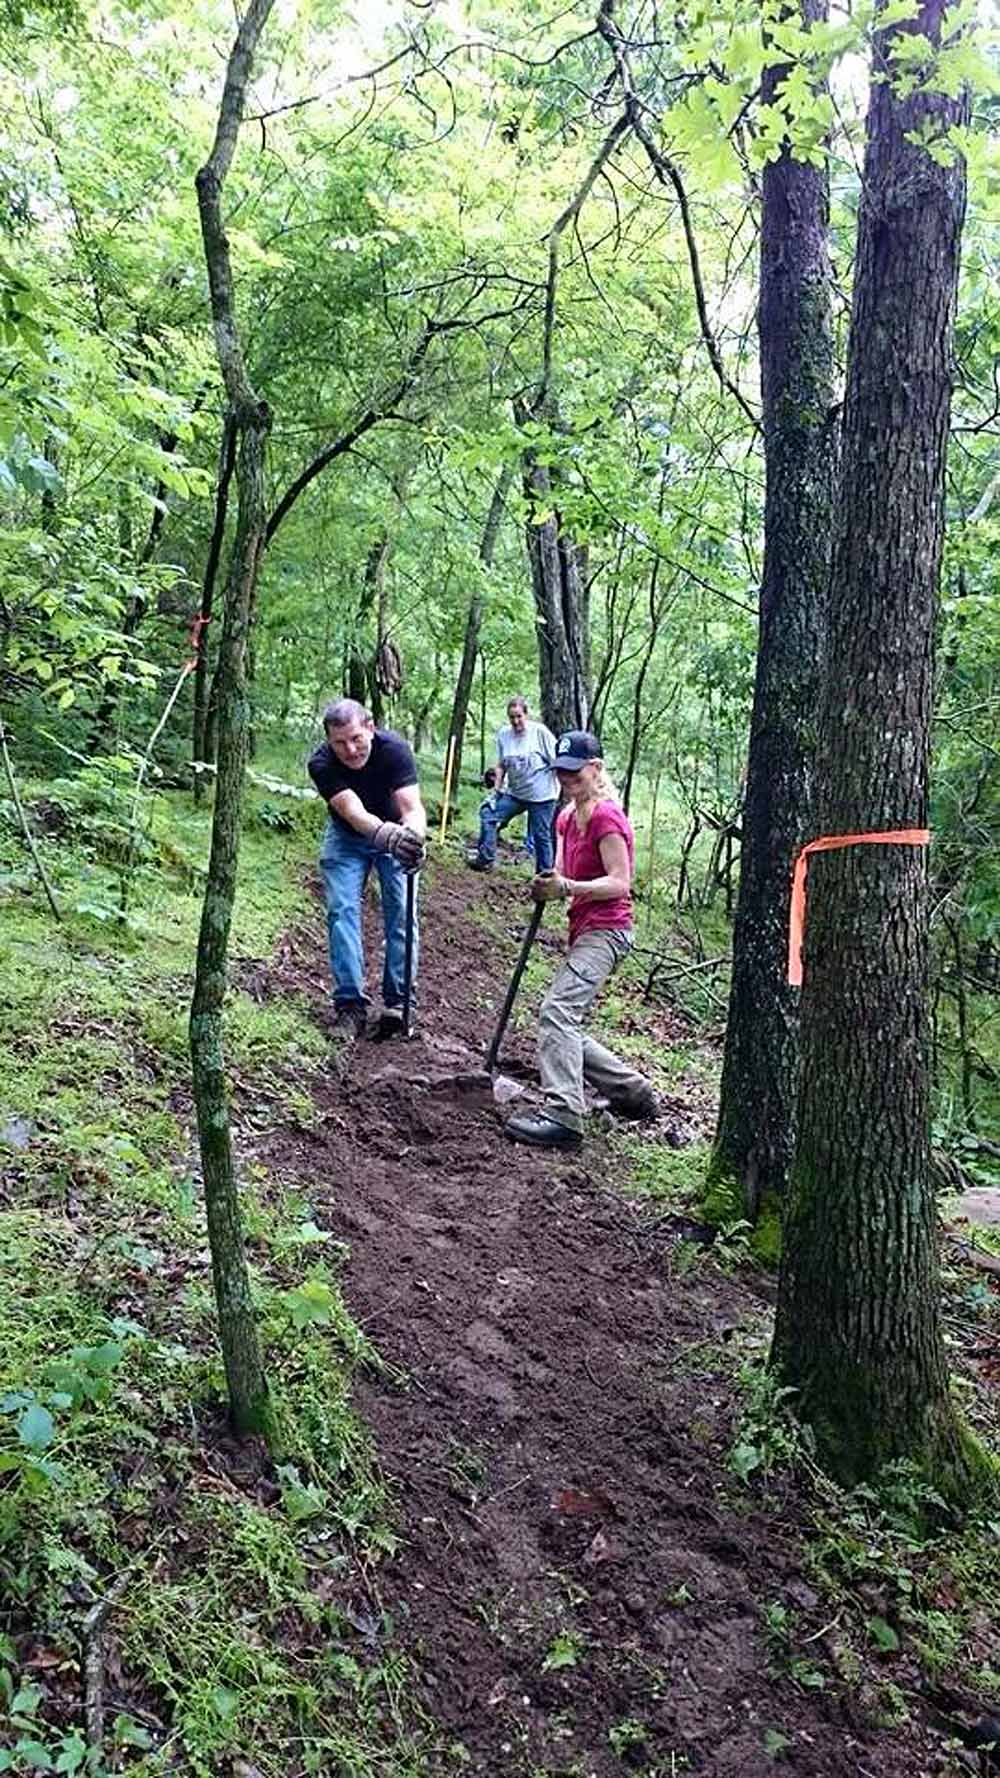 OORC members working some new trail in Northwest Arkansas.